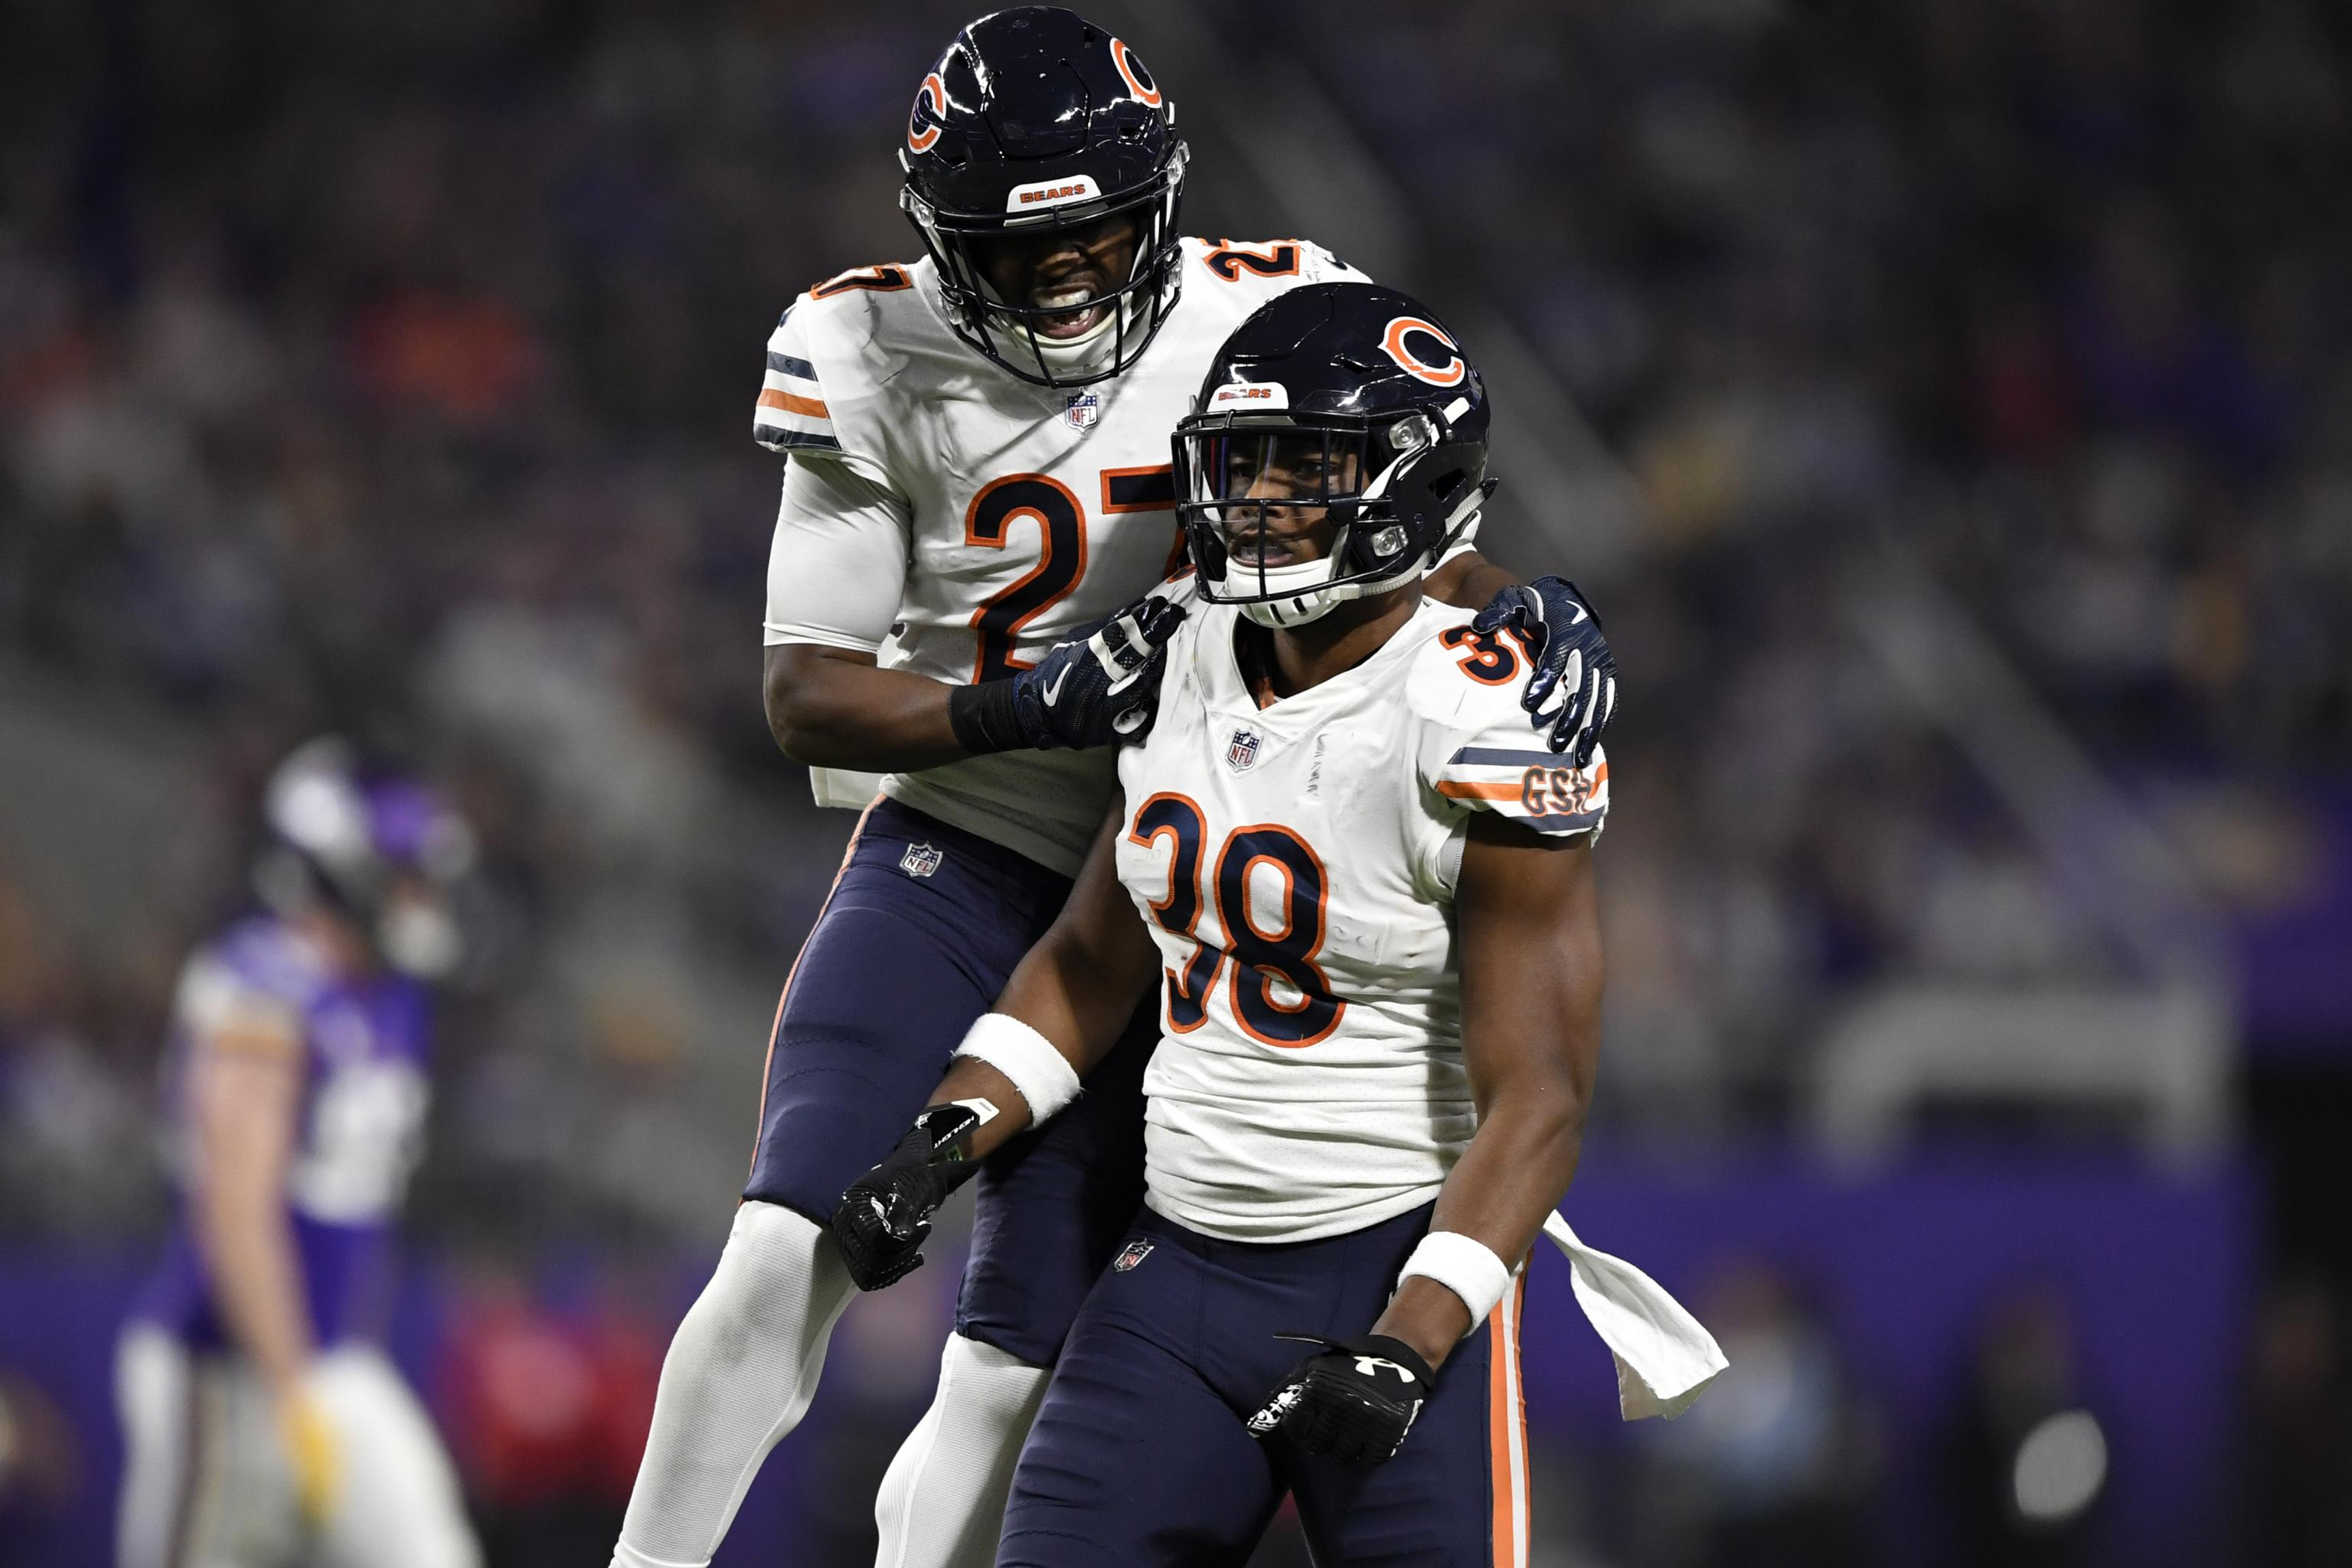 Packers Rumors: Ex-Bears Safety Adrian Amos Agrees to